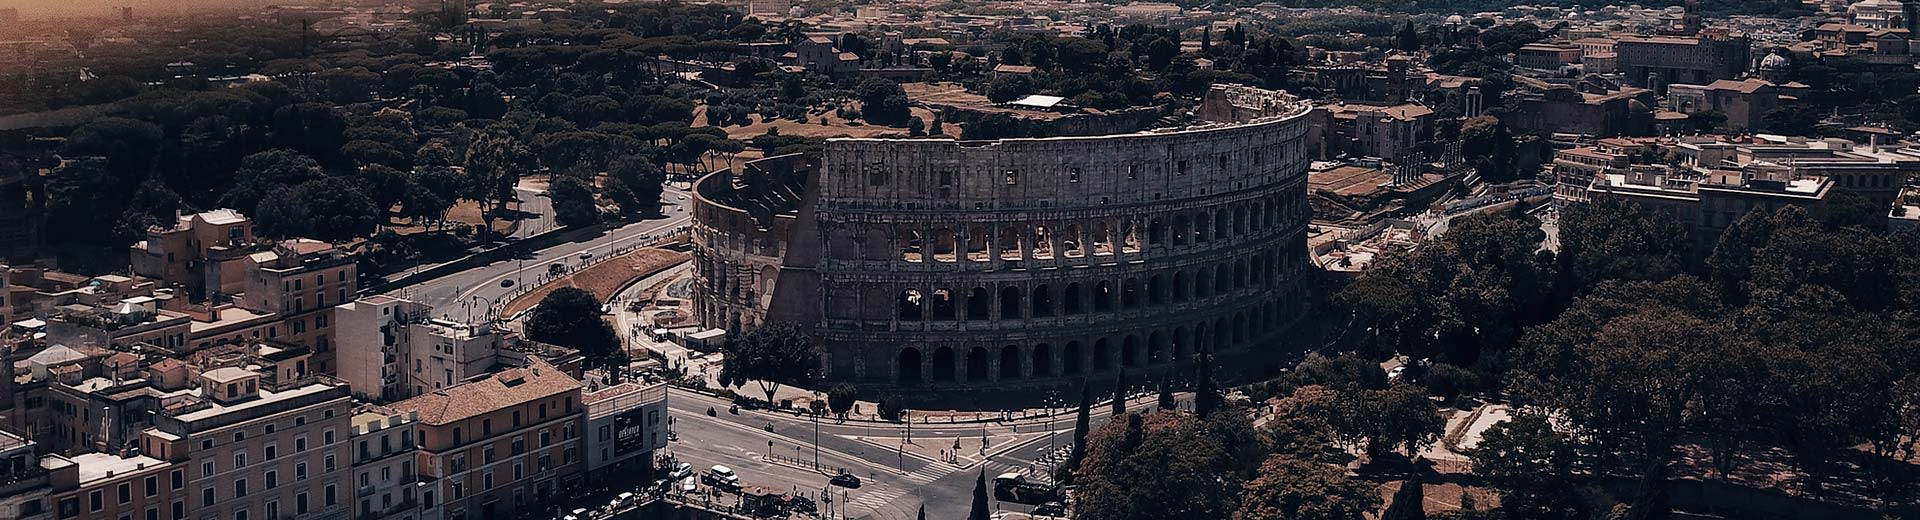 In the half-light of dusk or dawn, the famous Colosseum of Rome dominates the image, surrounded by buildings